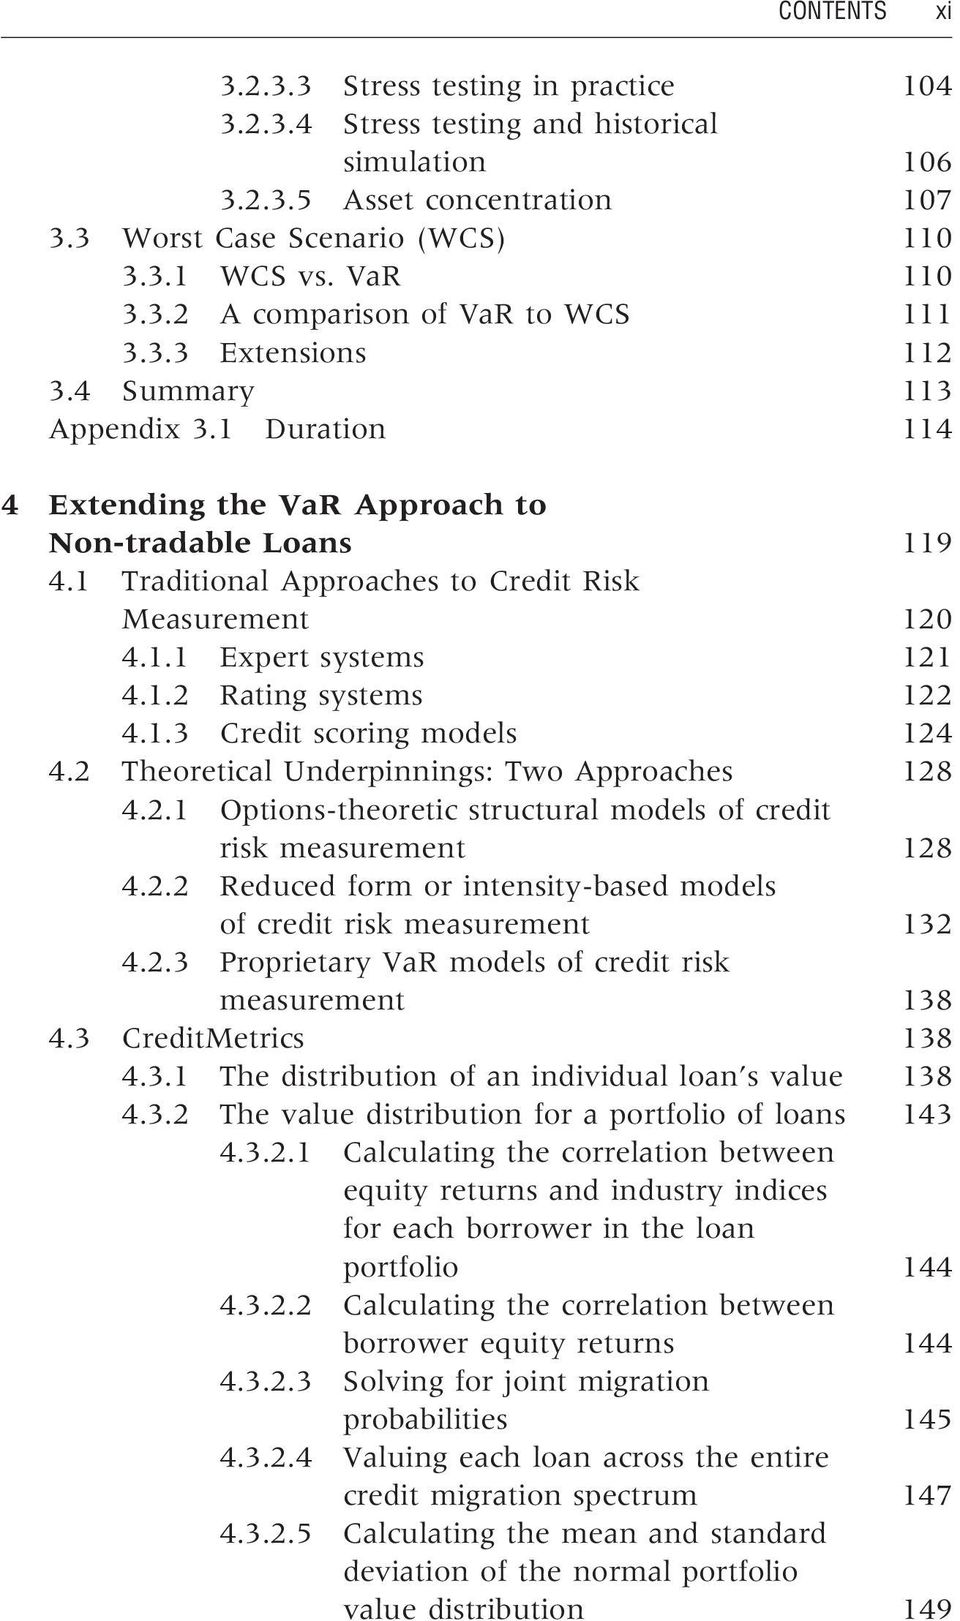 1.2 Rating systems 122 4.1.3 Credit scoring models 124 4.2 Theoretical Underpinnings: Two Approaches 128 4.2.1 Options-theoretic structural models of credit risk measurement 128 4.2.2 Reduced form or intensity-based models of credit risk measurement 132 4.